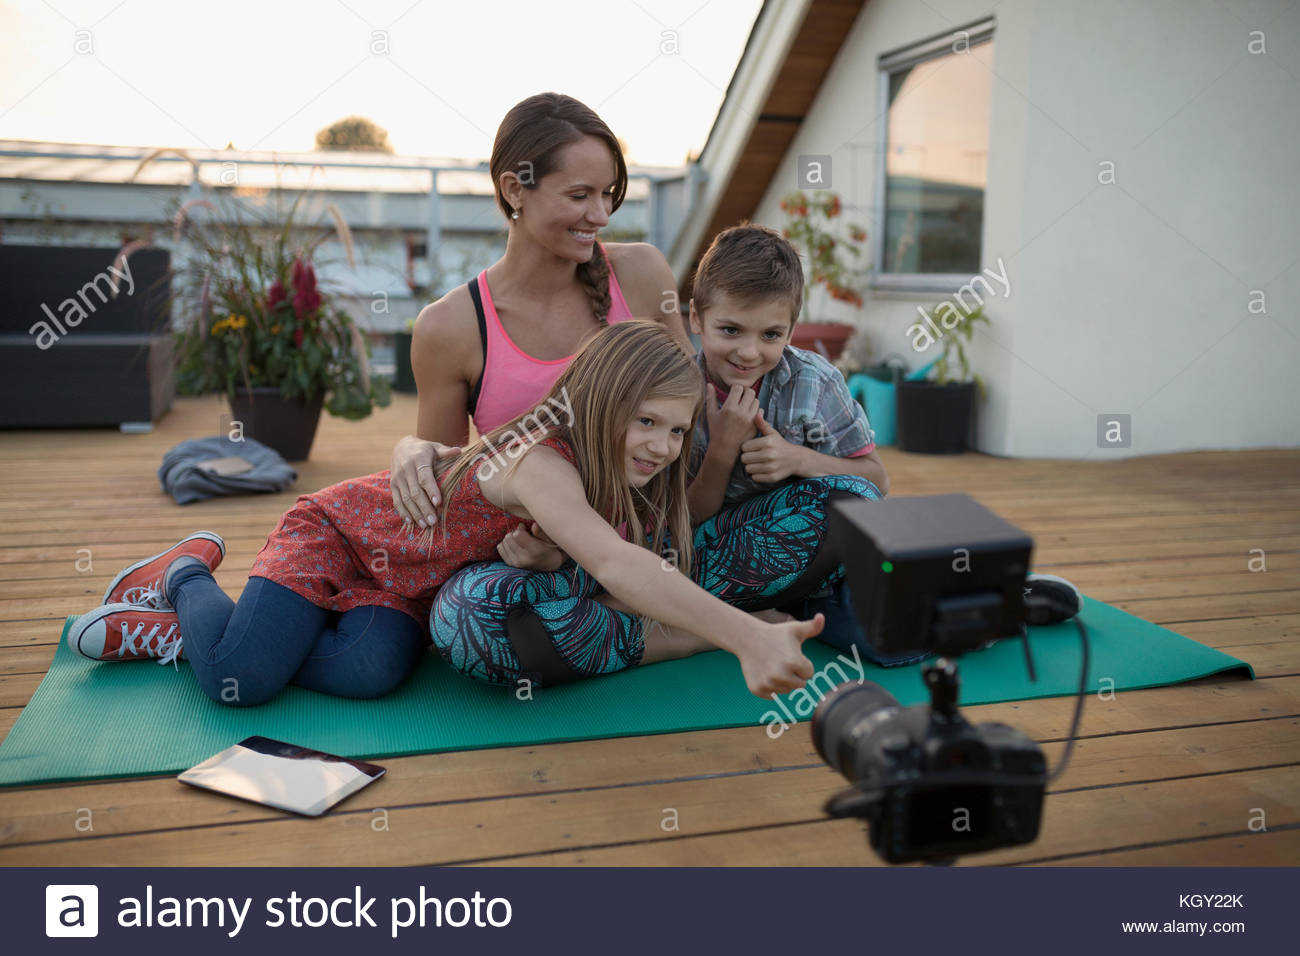 9ce0741a481c7 Filming Outdoors Stock Photos   Filming Outdoors Stock Images - Alamy